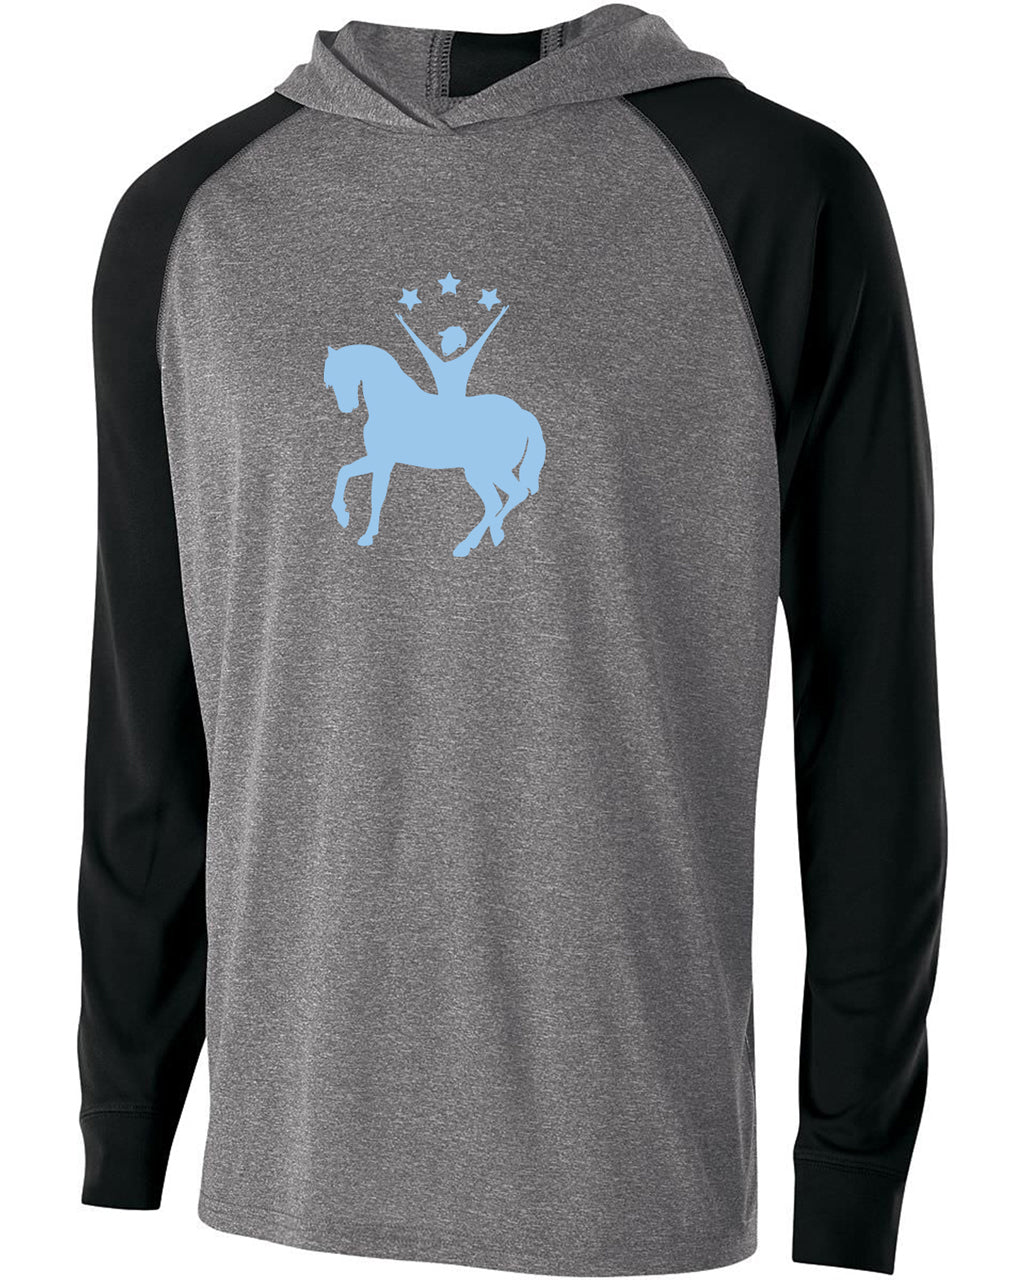 Ready Set Ride Long Sleeve Hooded T-Shirt